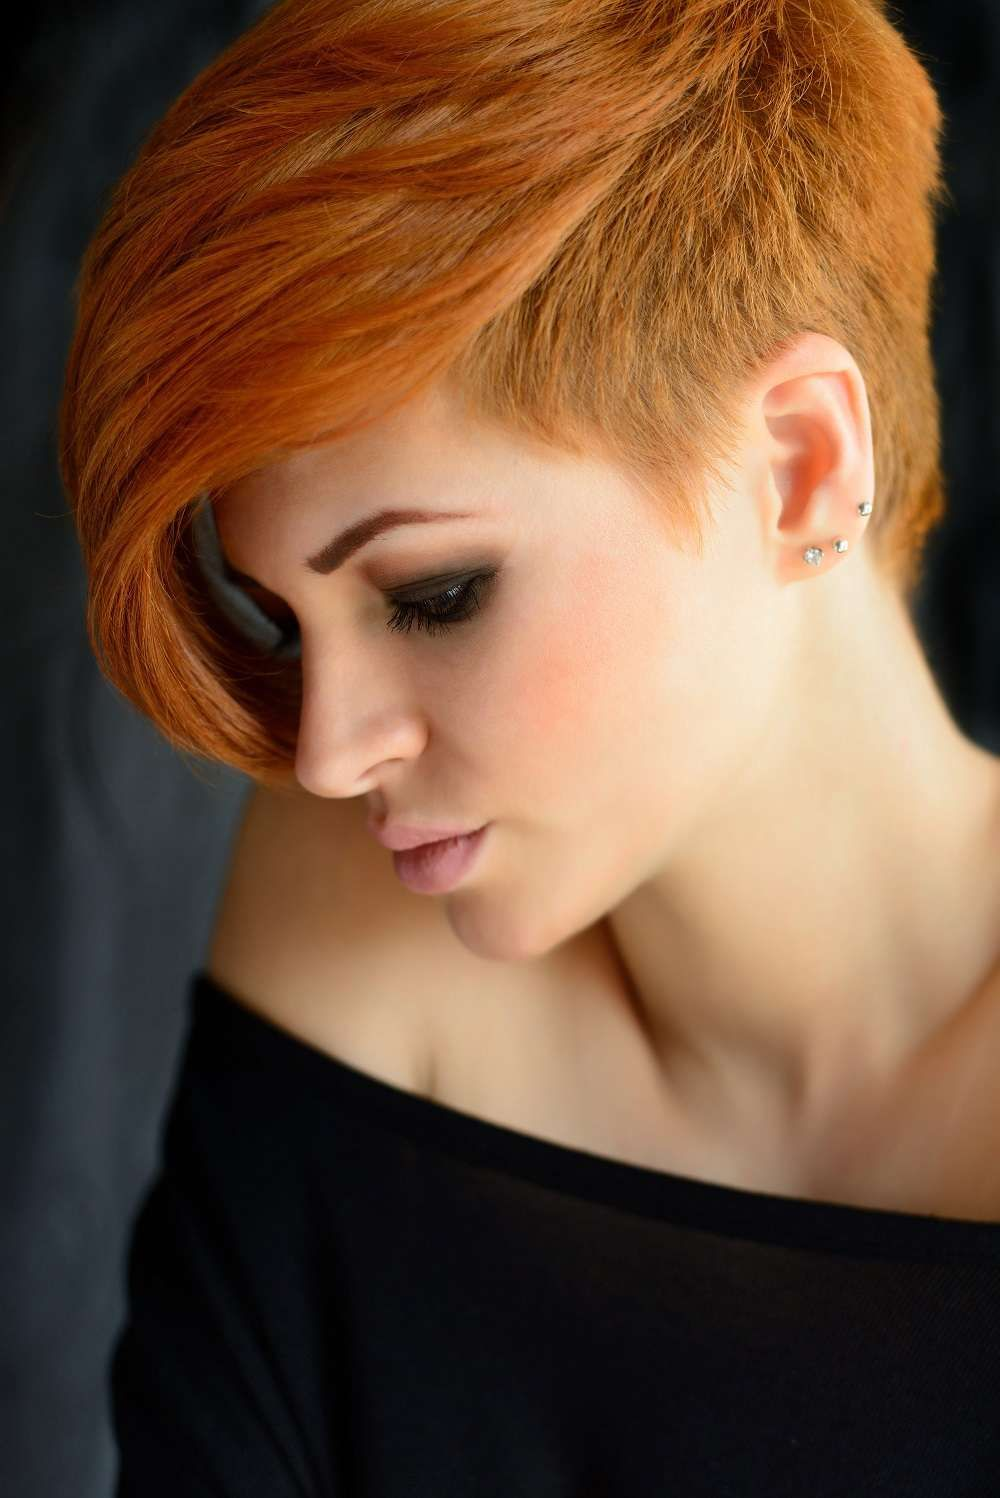 Pin on Coupes de cheveux femme | Coloration cheveux et coiffures | Hairstyles & Hairtrends